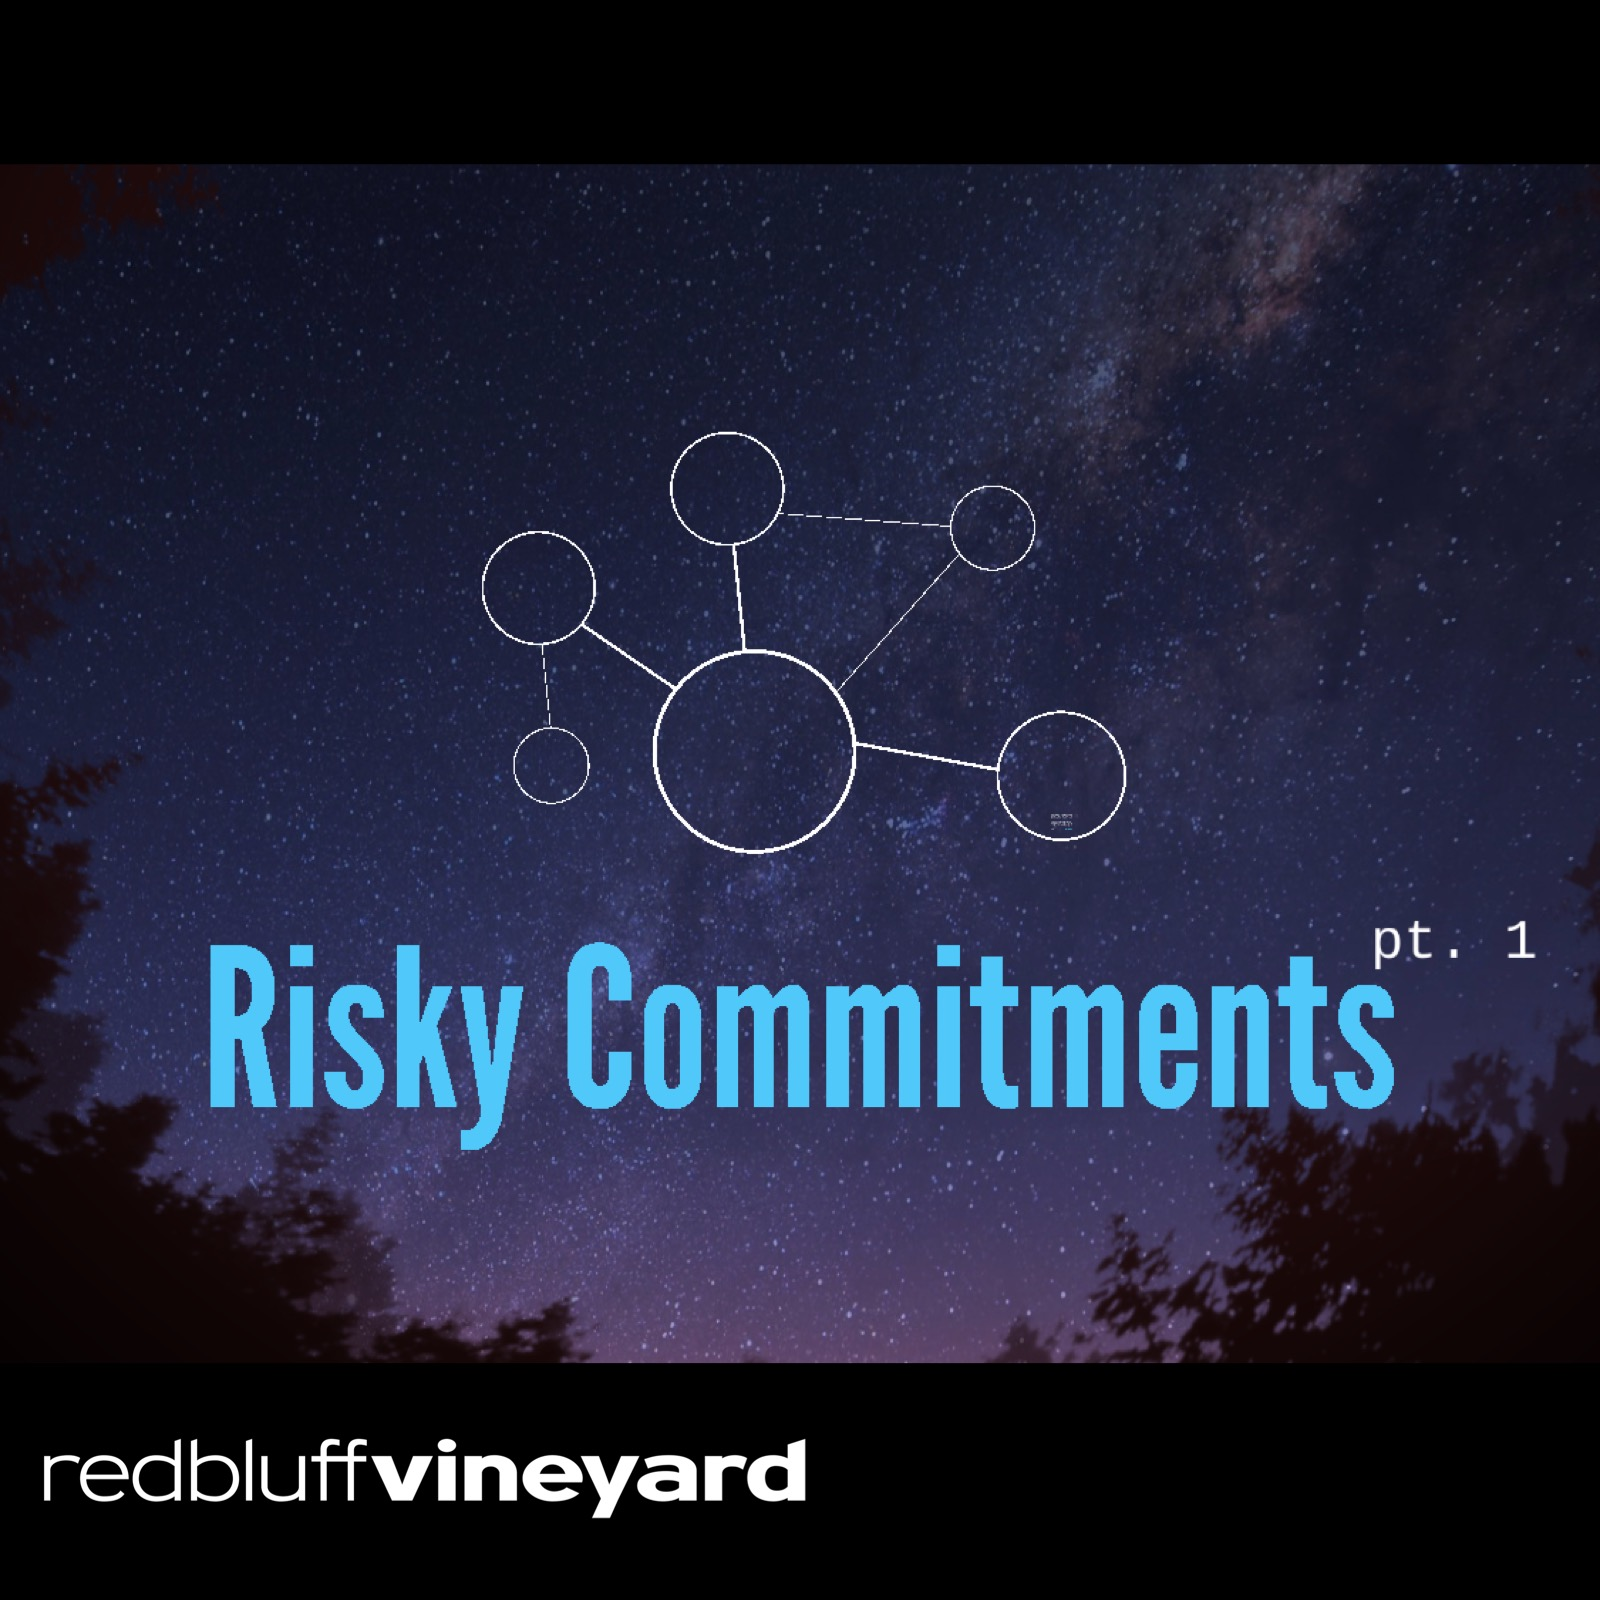 Risky Commitments: Community